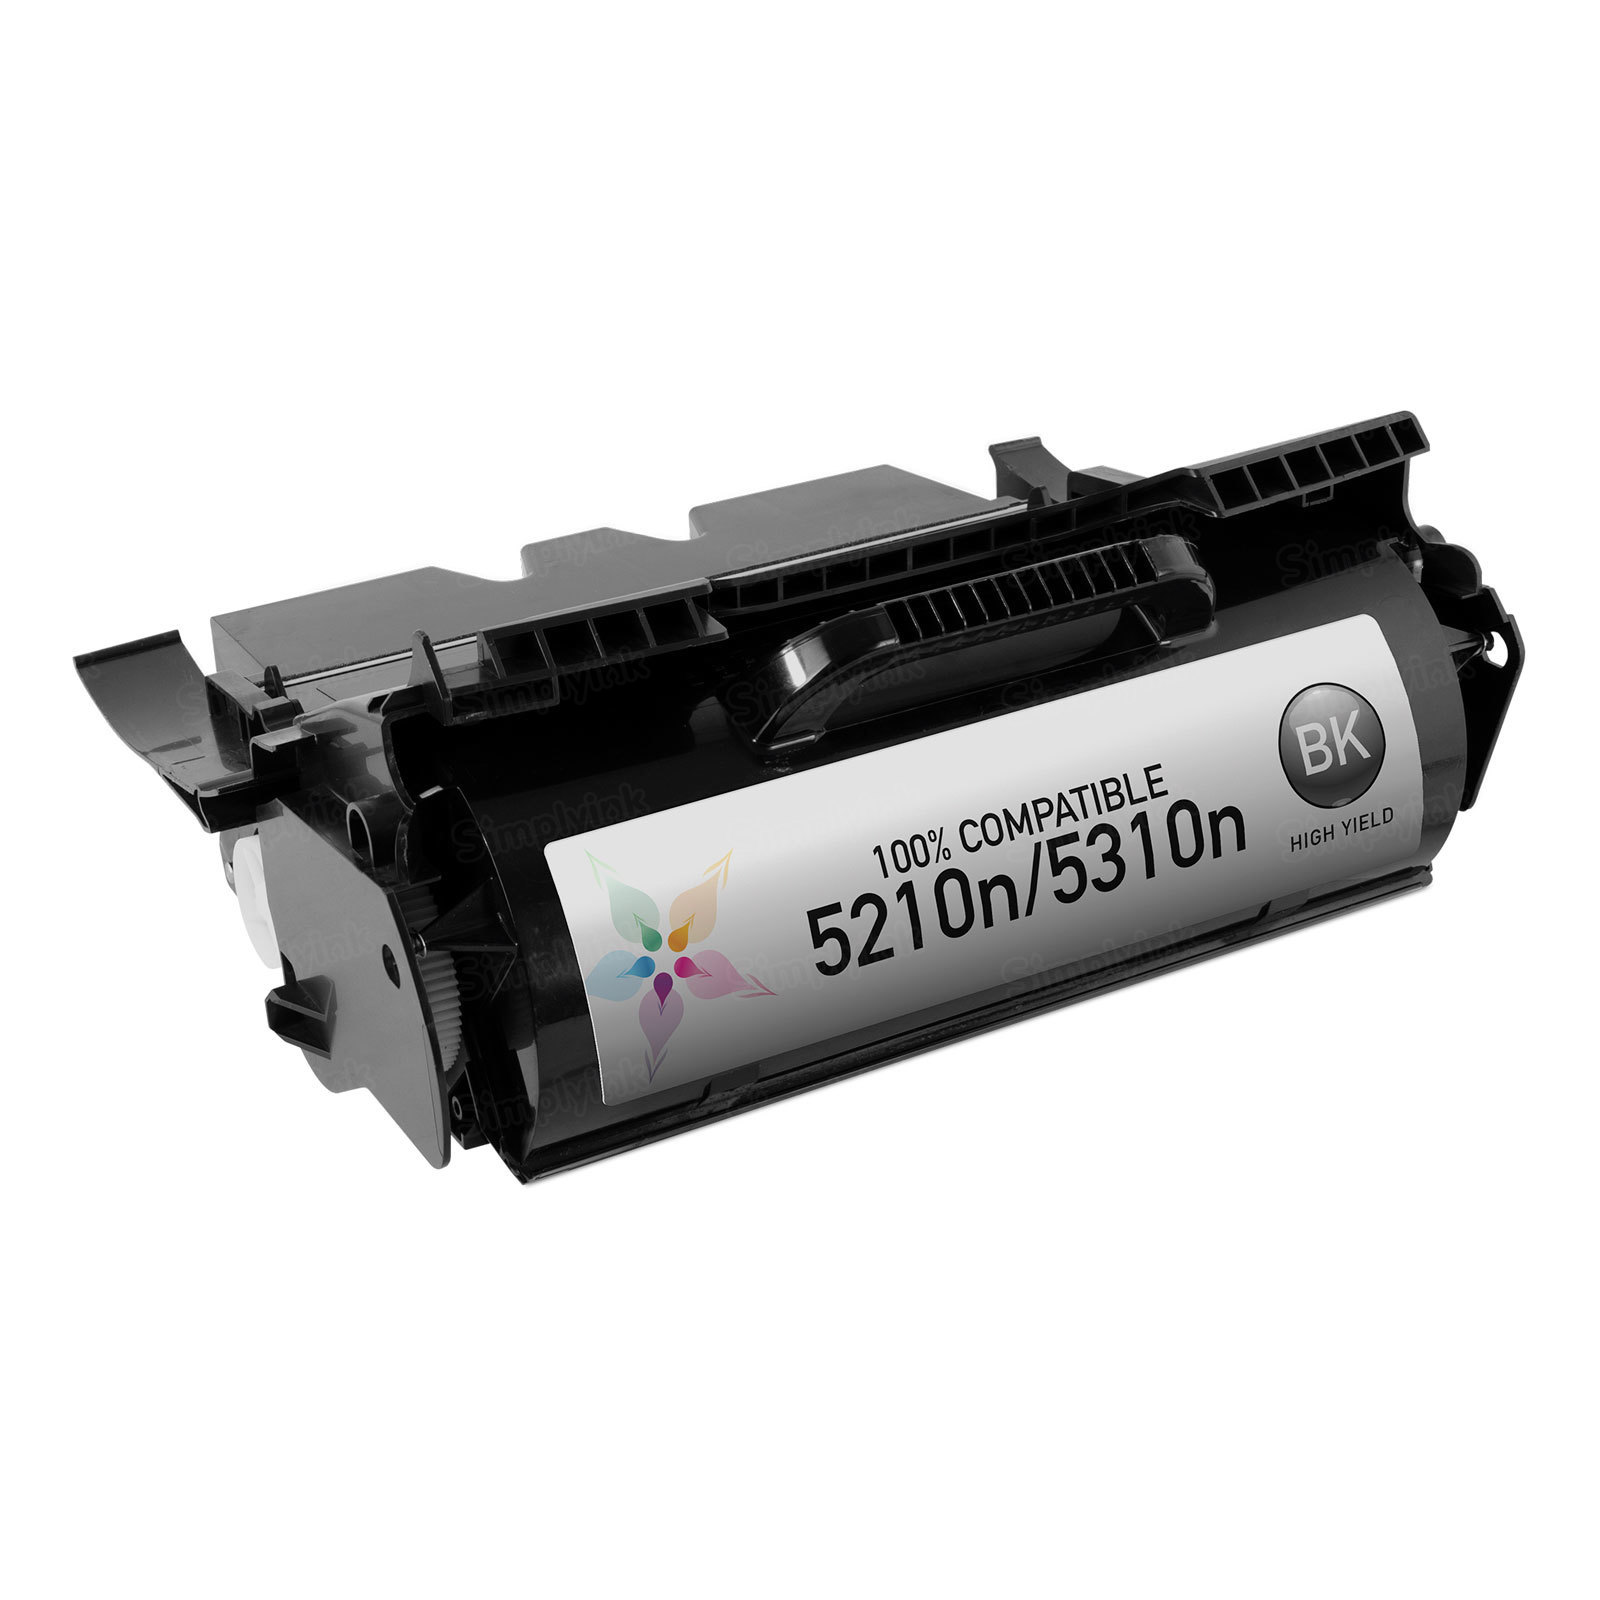 Refurb. Dell 5210n, 5310n (HD767) Black Toner